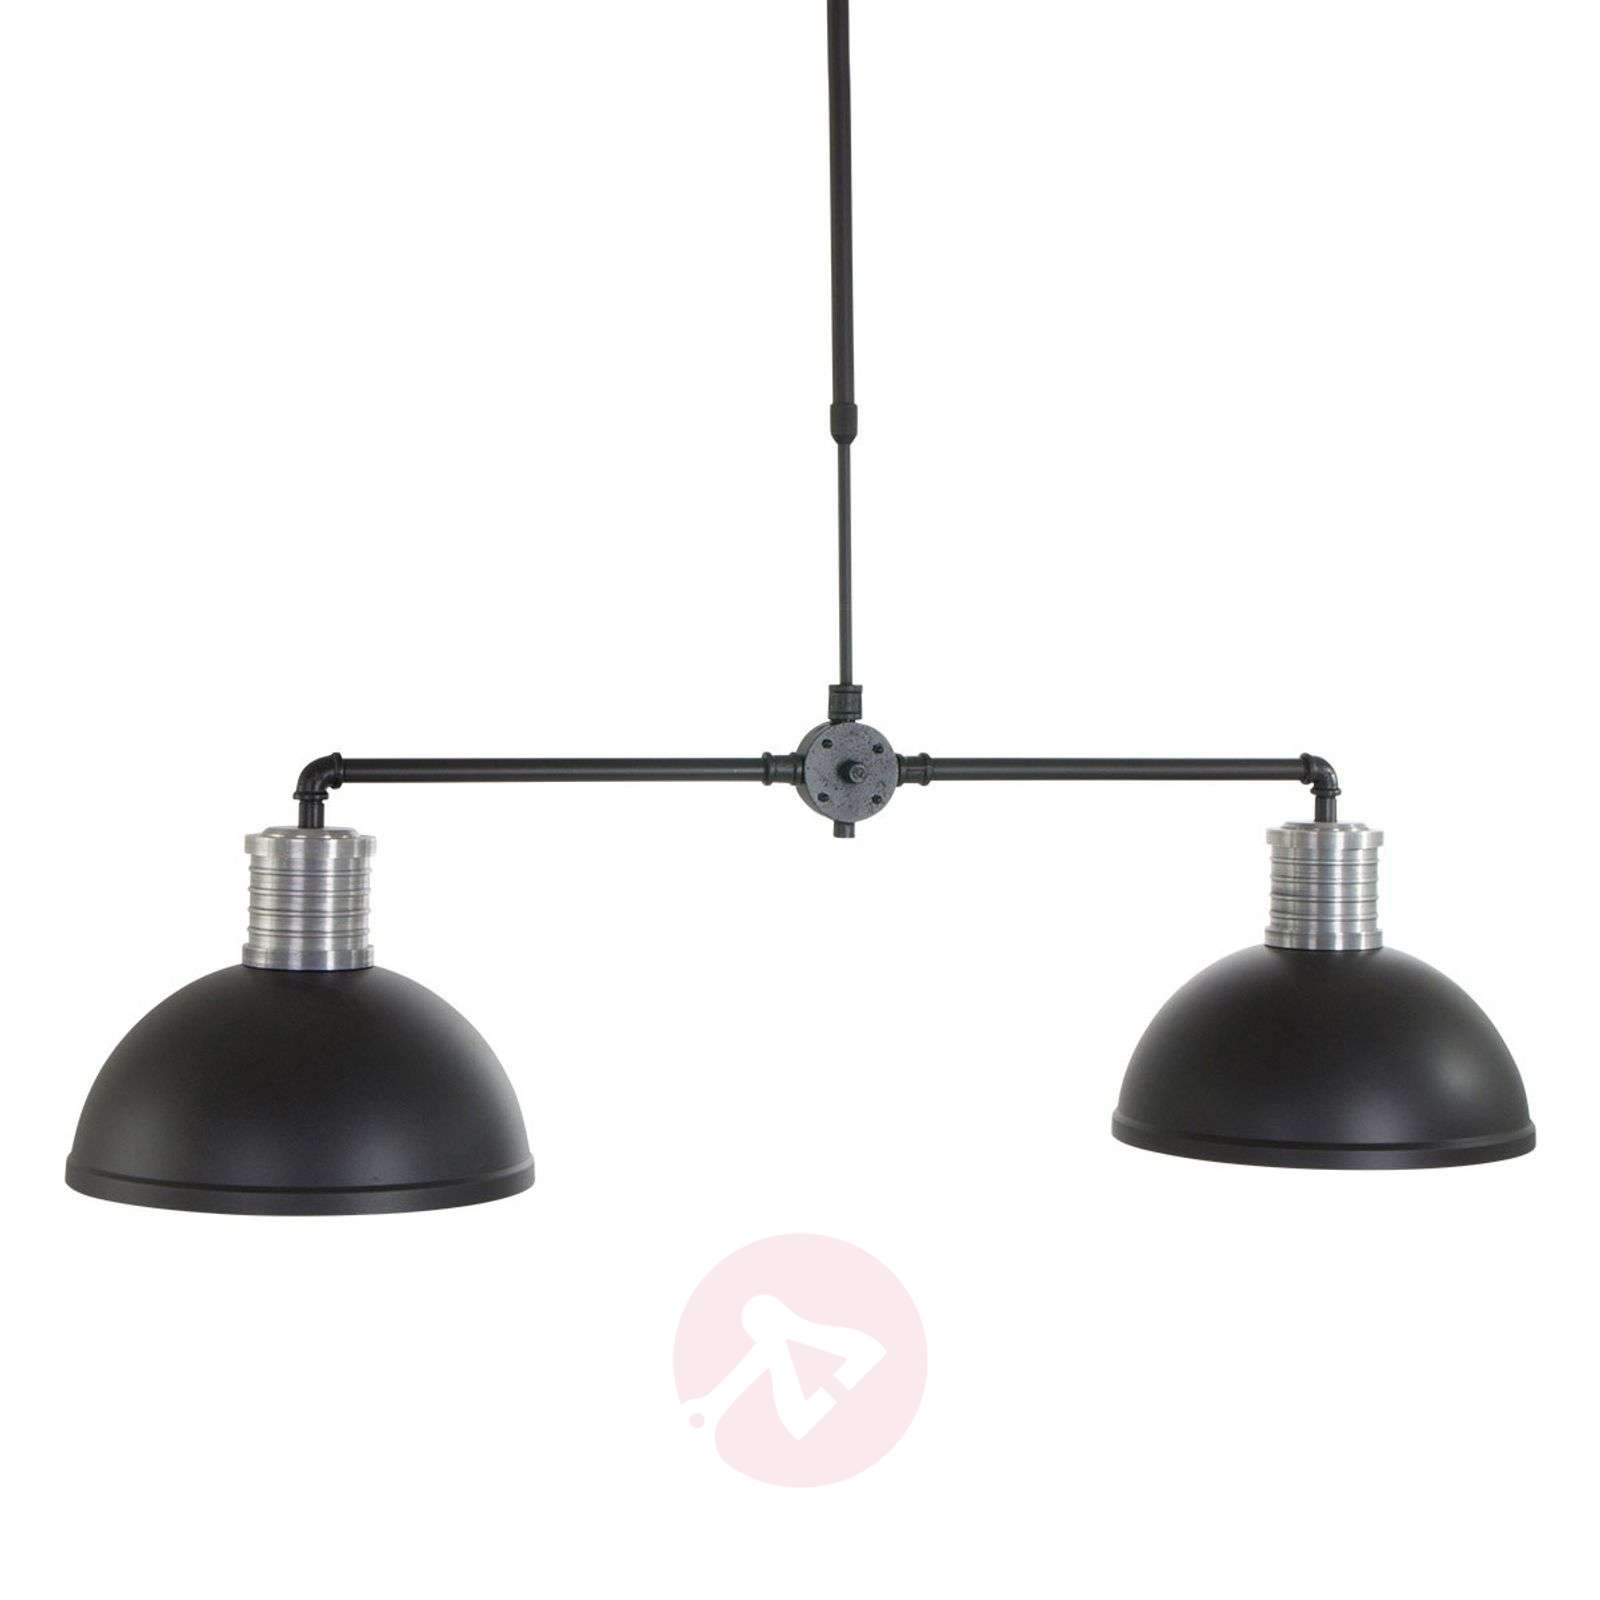 light store furniture otis pendant single shop the modern industrial black block